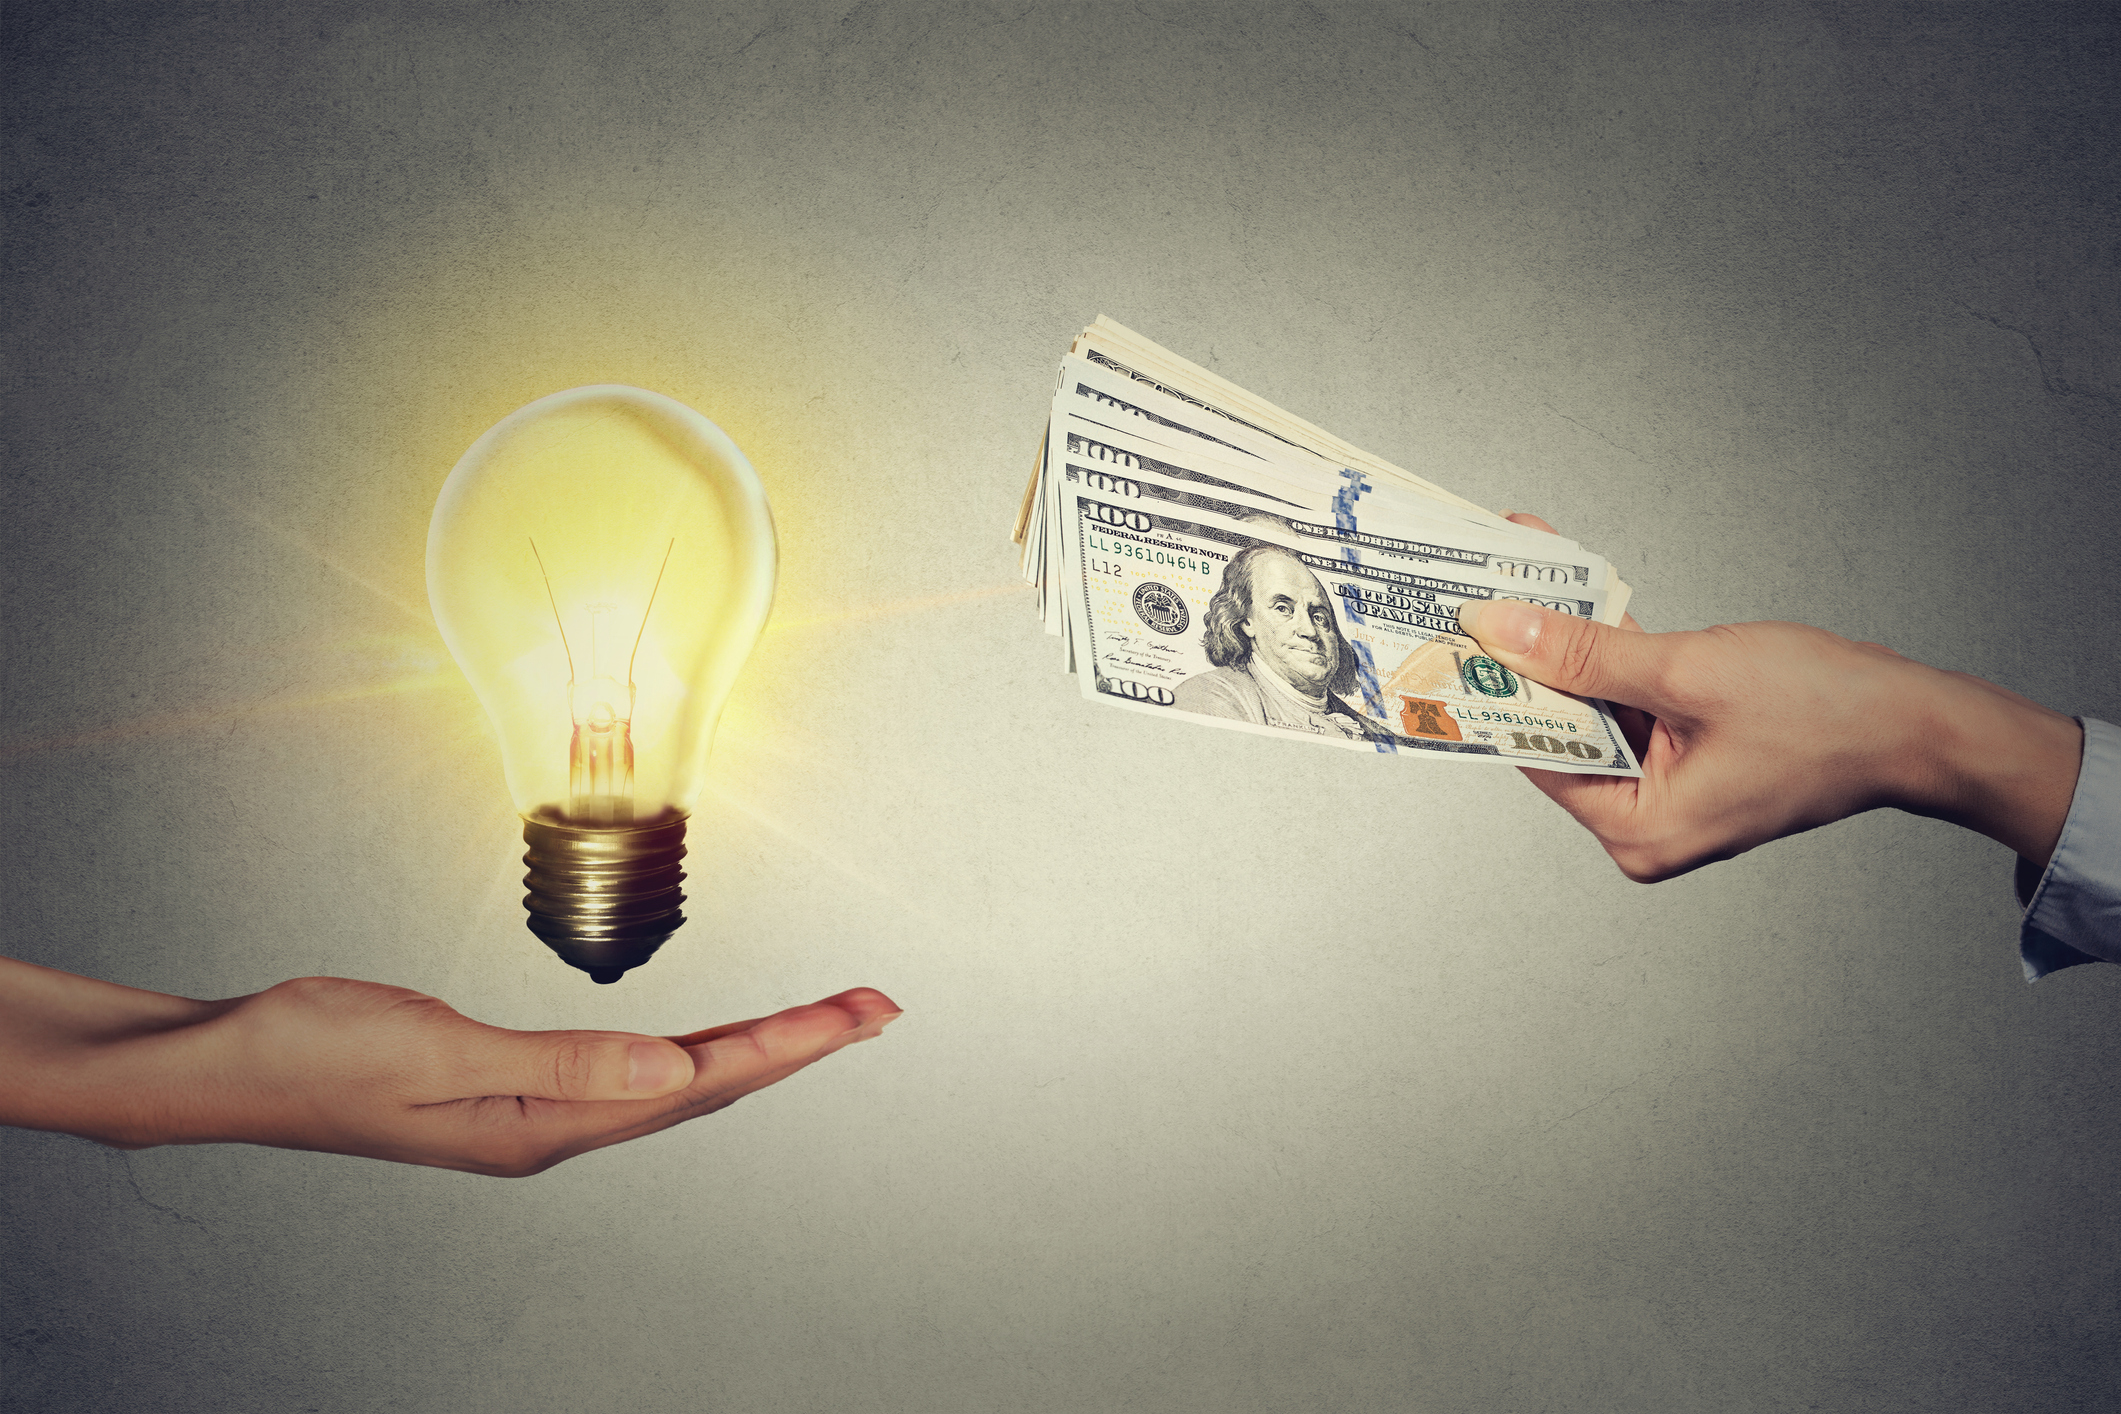 one hand holding a light bulb while the other hand offers money dollar bills